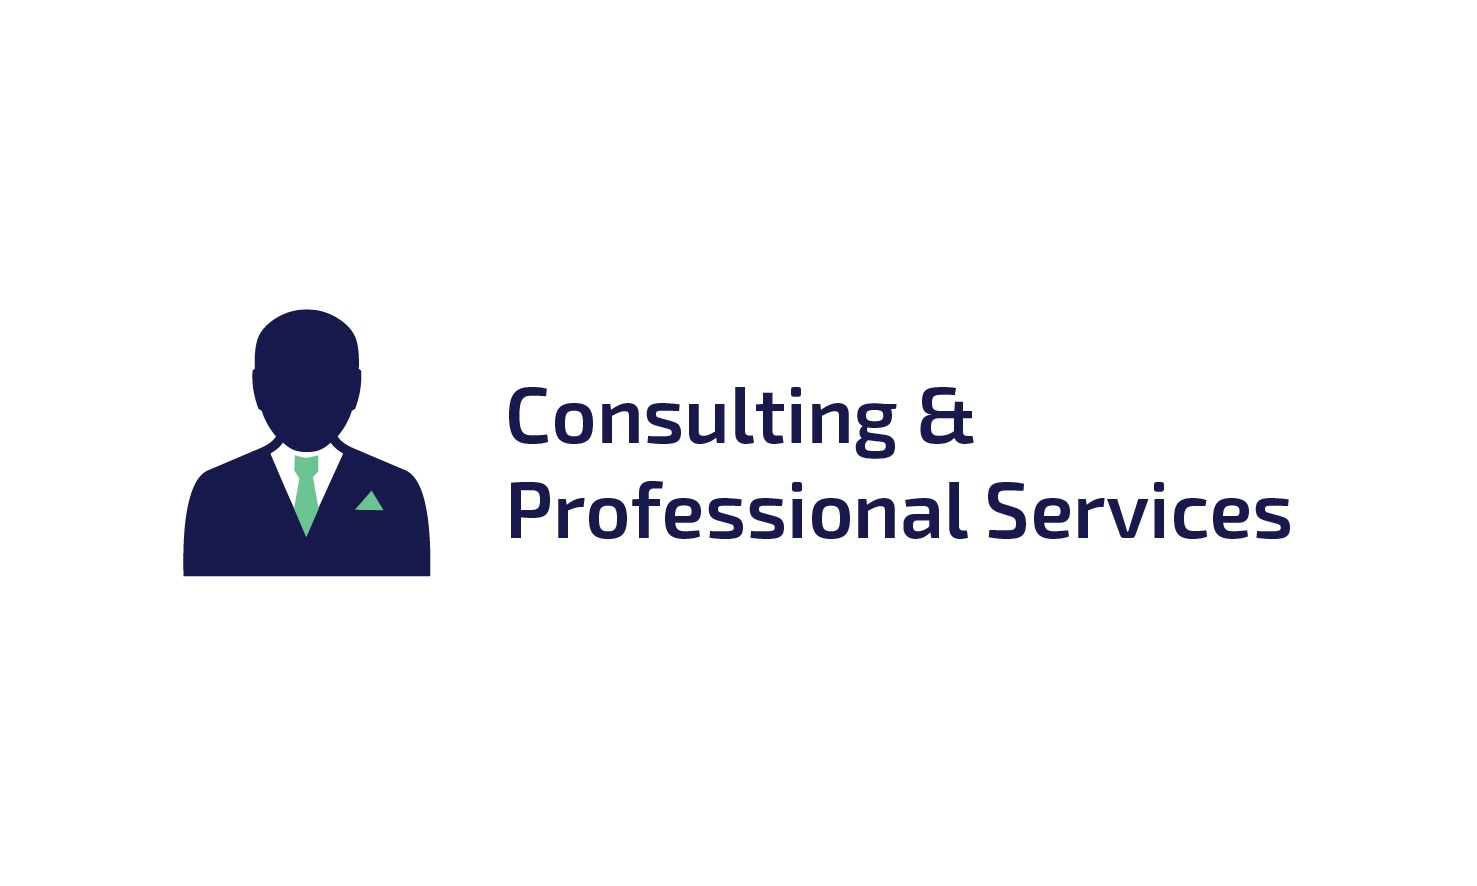 Viadex-Consulting-Professional-Services